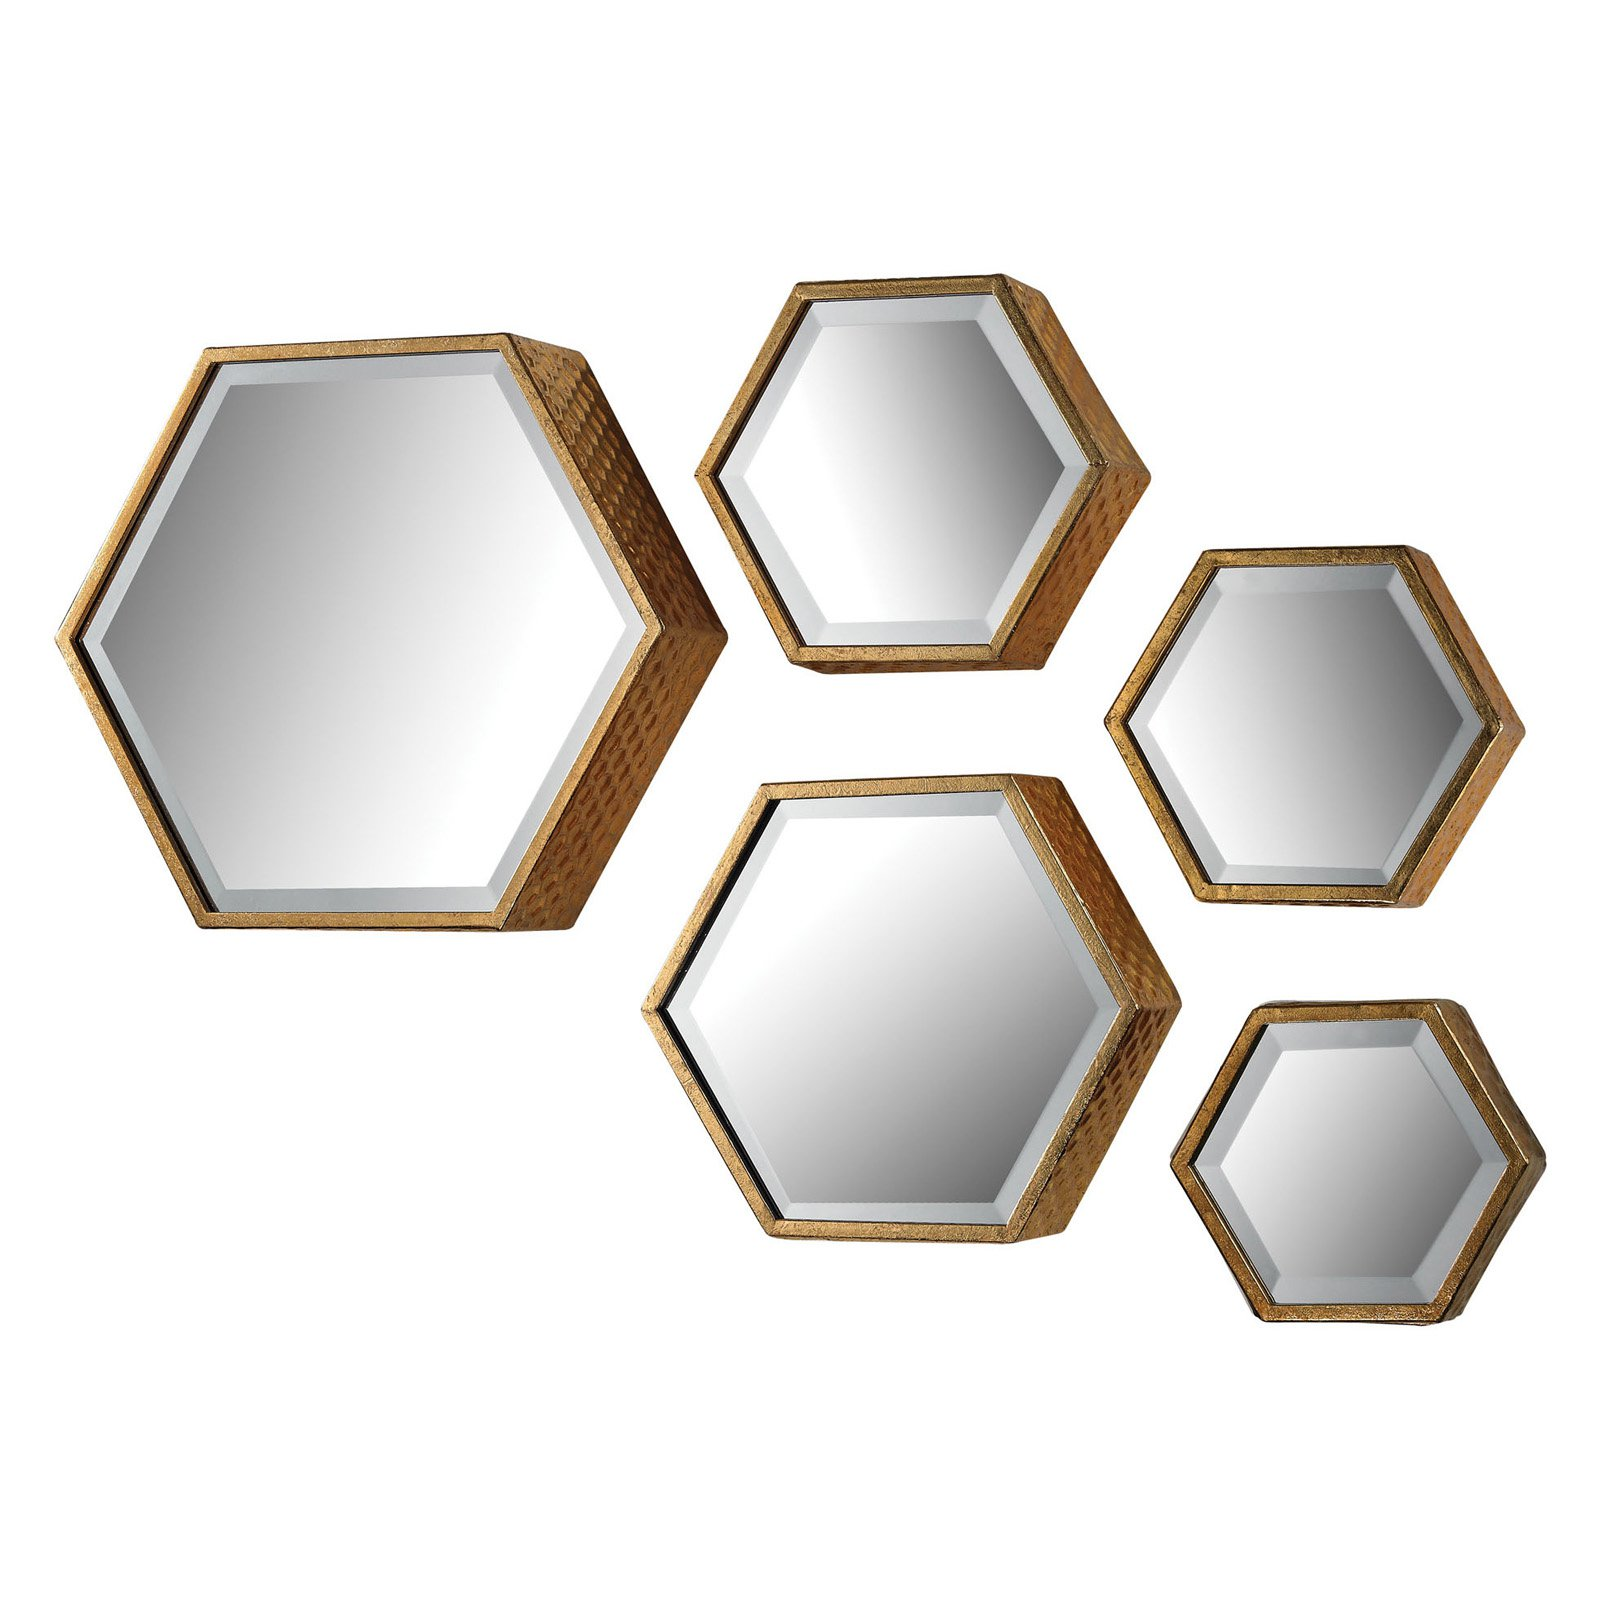 Sterling Hexagonal Beveled Wall Mirrors - Set of 5